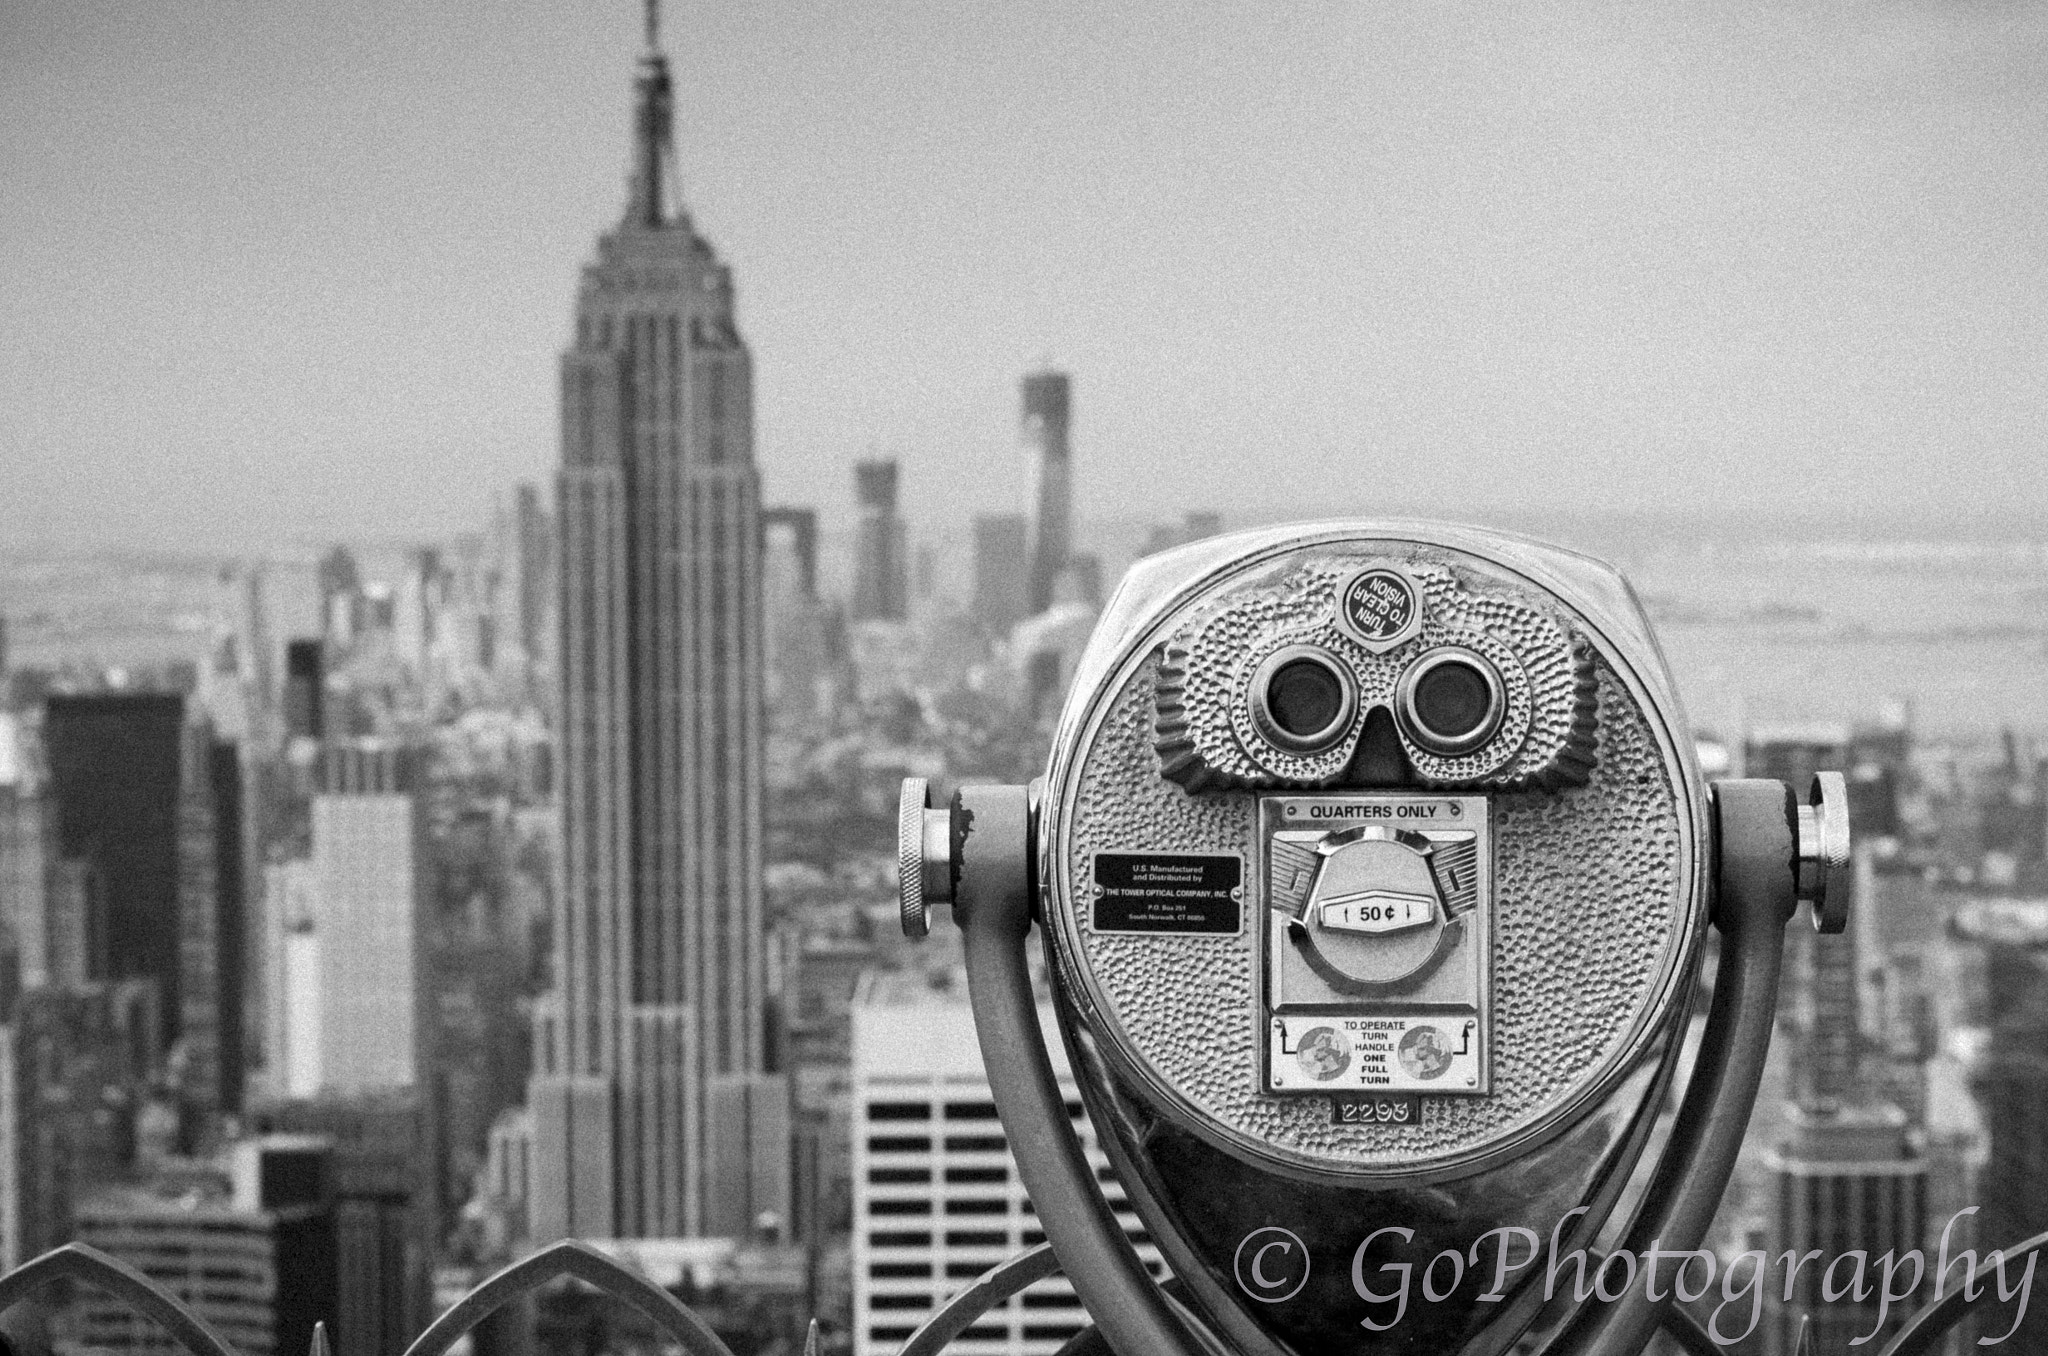 Photograph The Viewer's View by Tim Go on 500px